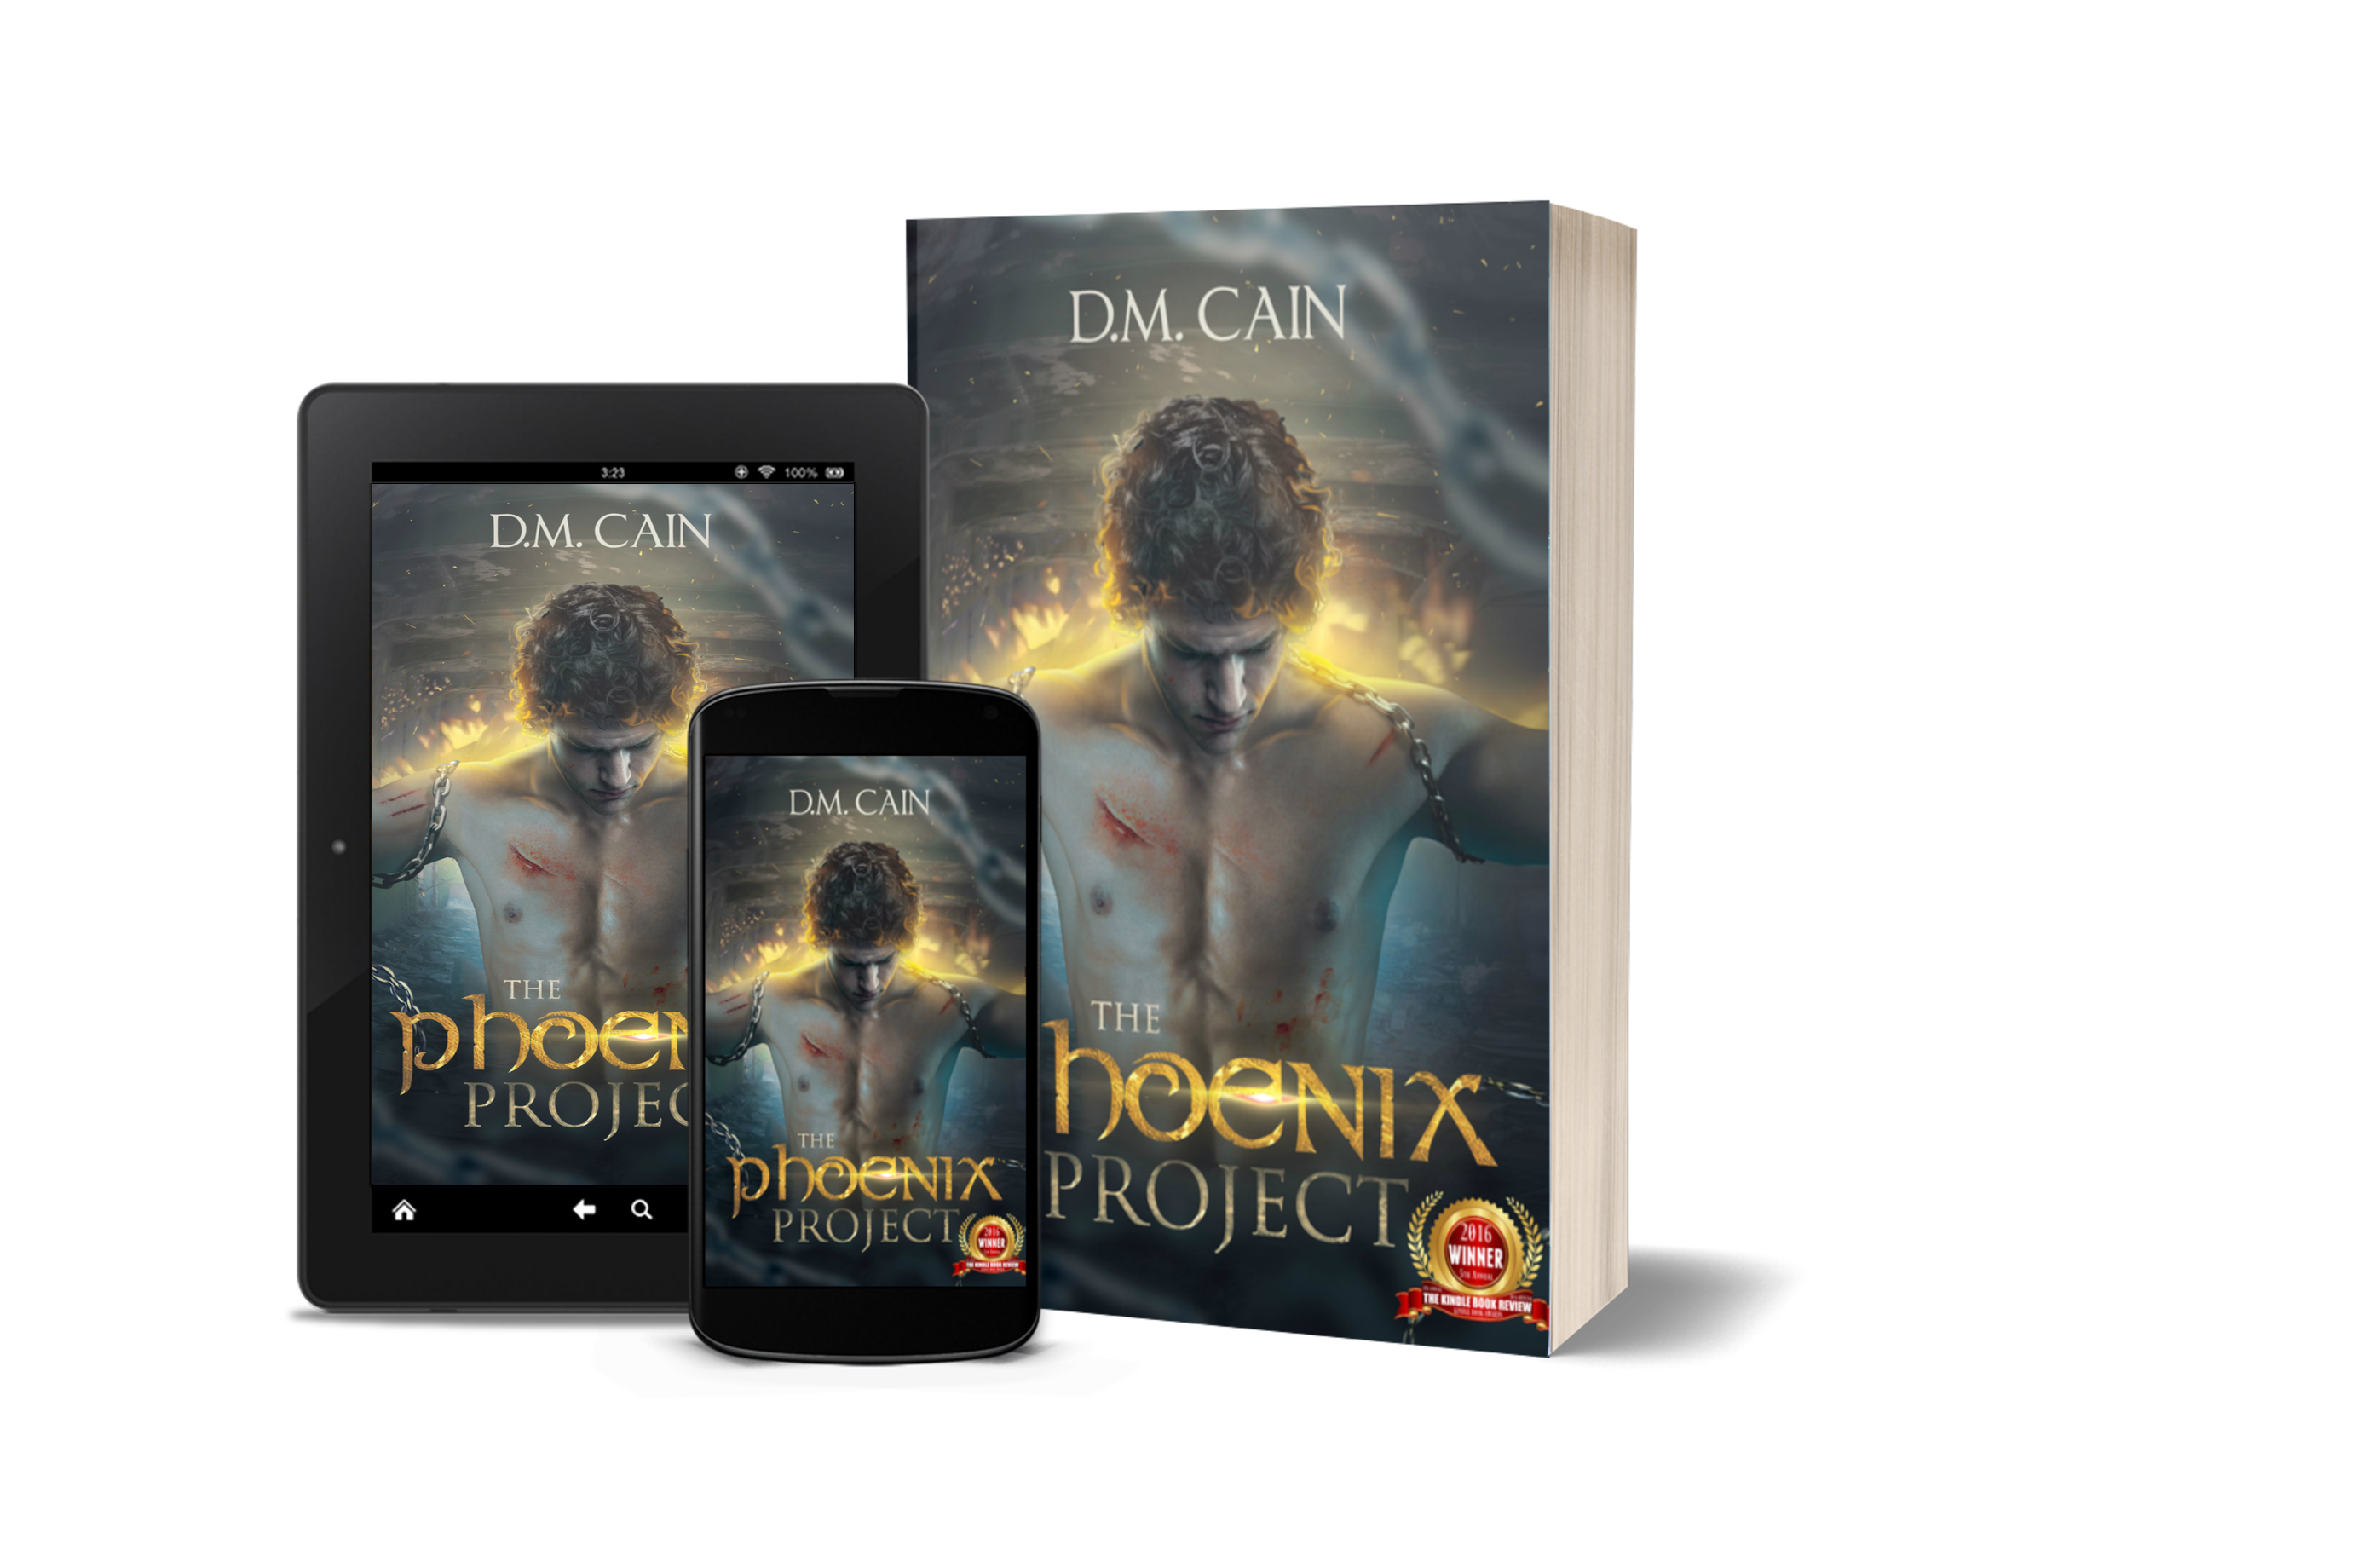 The Phoenix Project by D.M. Cain multiple formats image